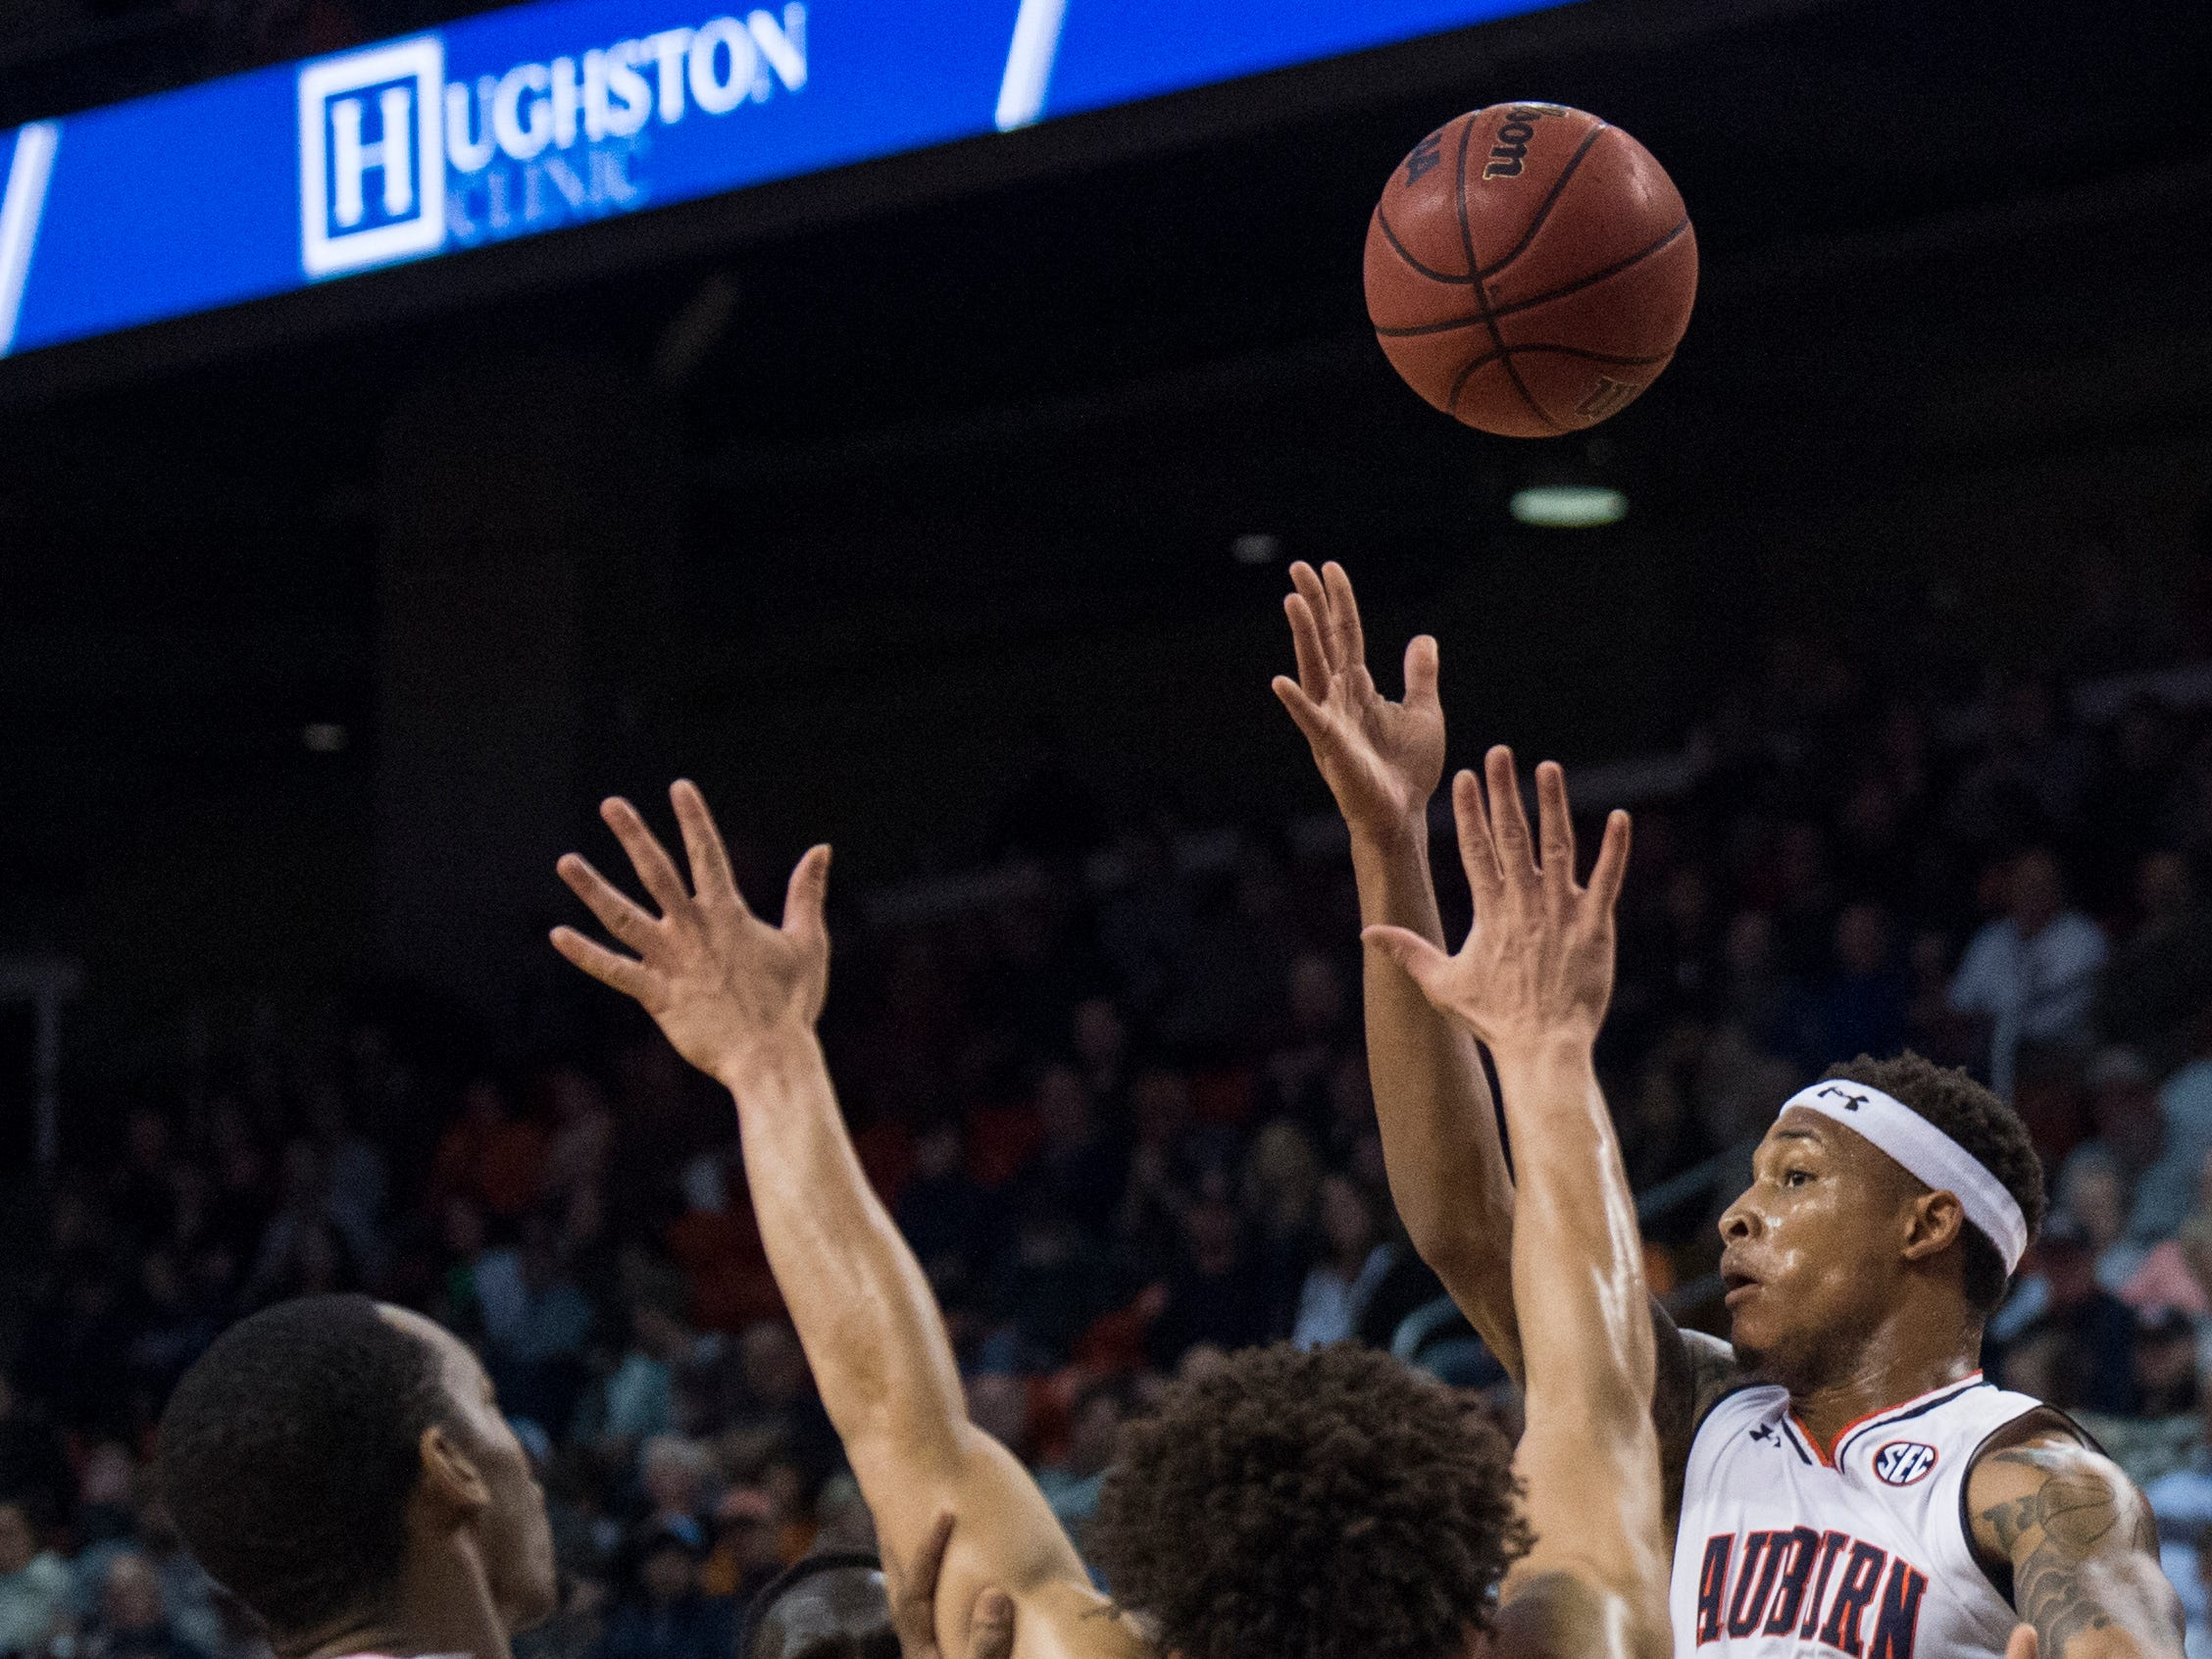 Auburn guard Bryce Brown (2) passes inside to center Austin Wiley (50)at Auburn Arena in Auburn, Ala., on Wednesday, Nov. 28, 2018. Auburn defeated Saint Peter's 99-49.